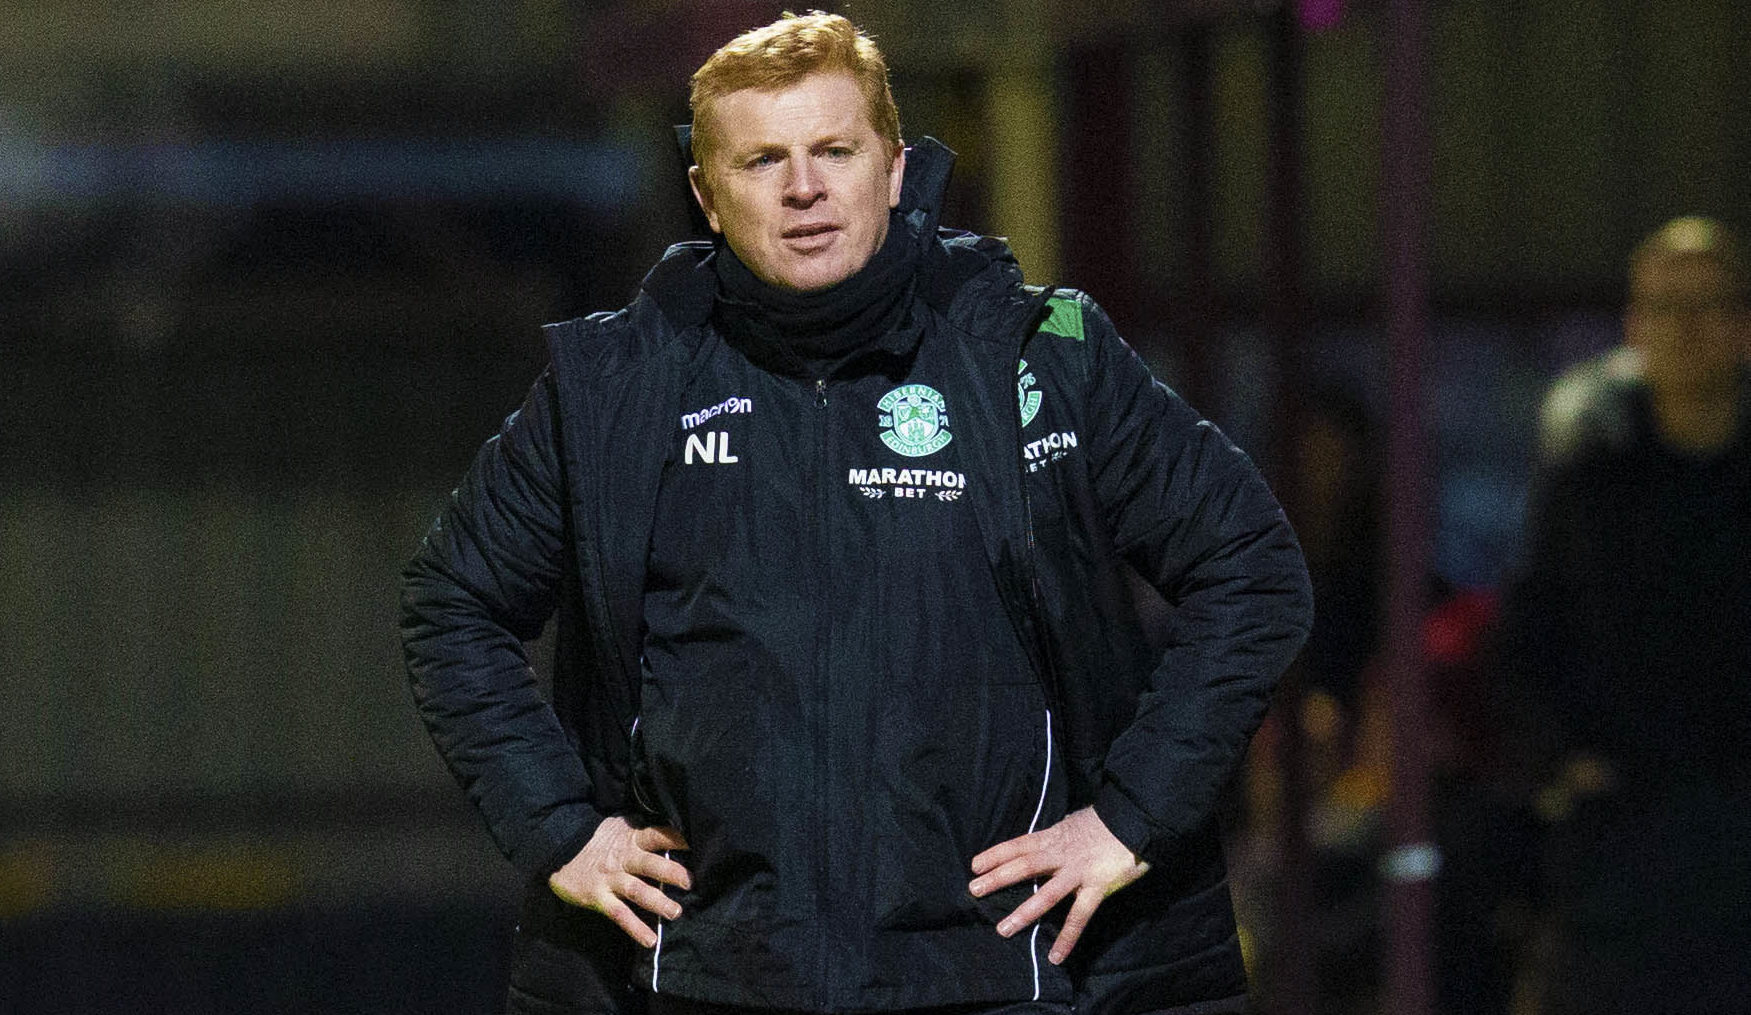 Hibs manager Neil Lennon frustrated on the touchline (SNS Group / Bruce White)